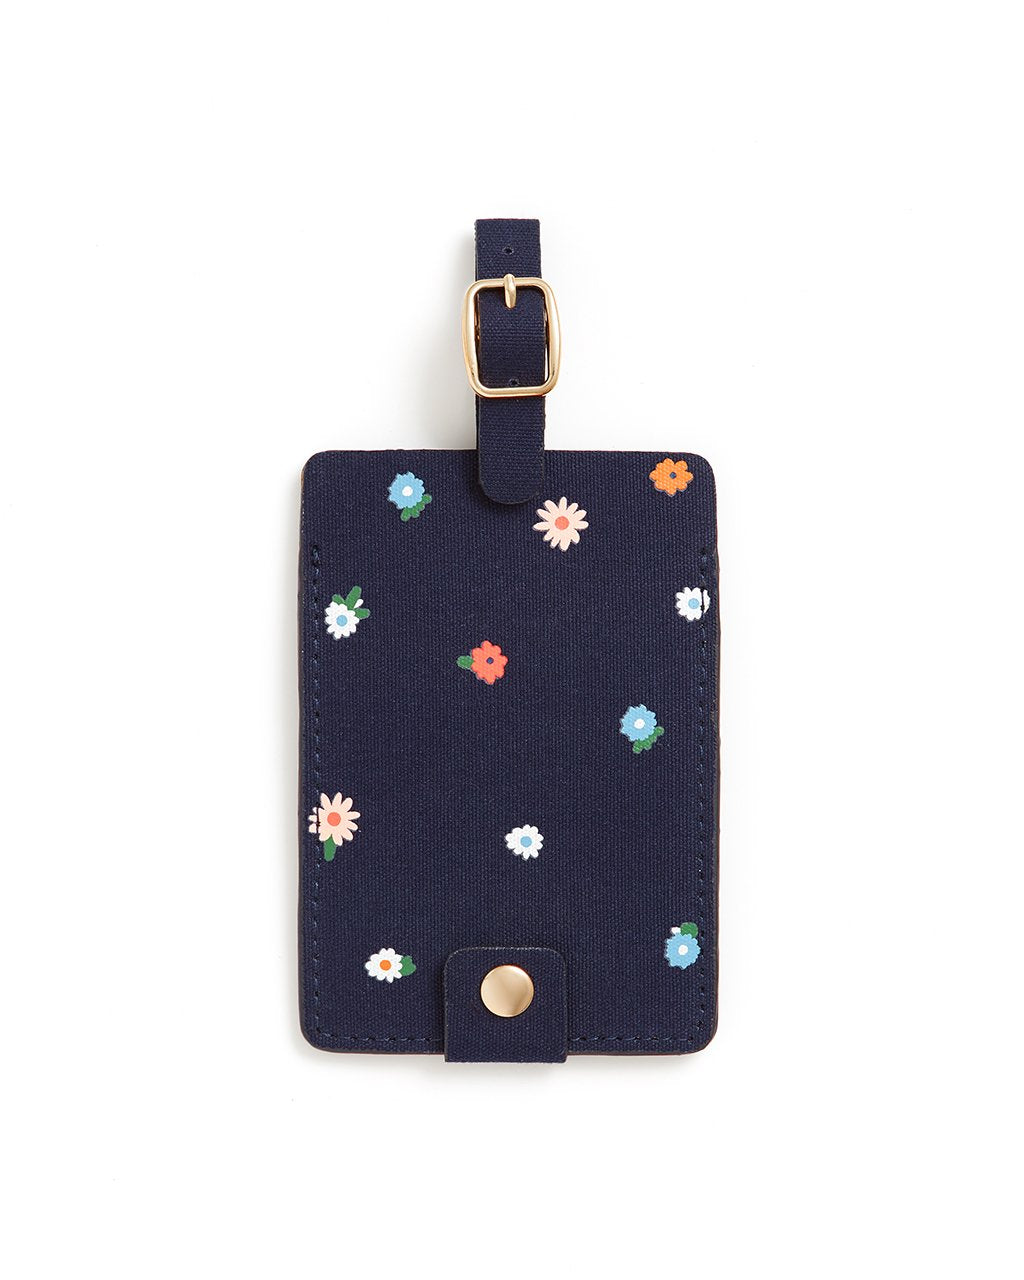 This Getaway Luggage Tag comes in deep navy, with a rainbow polkadot pattern.